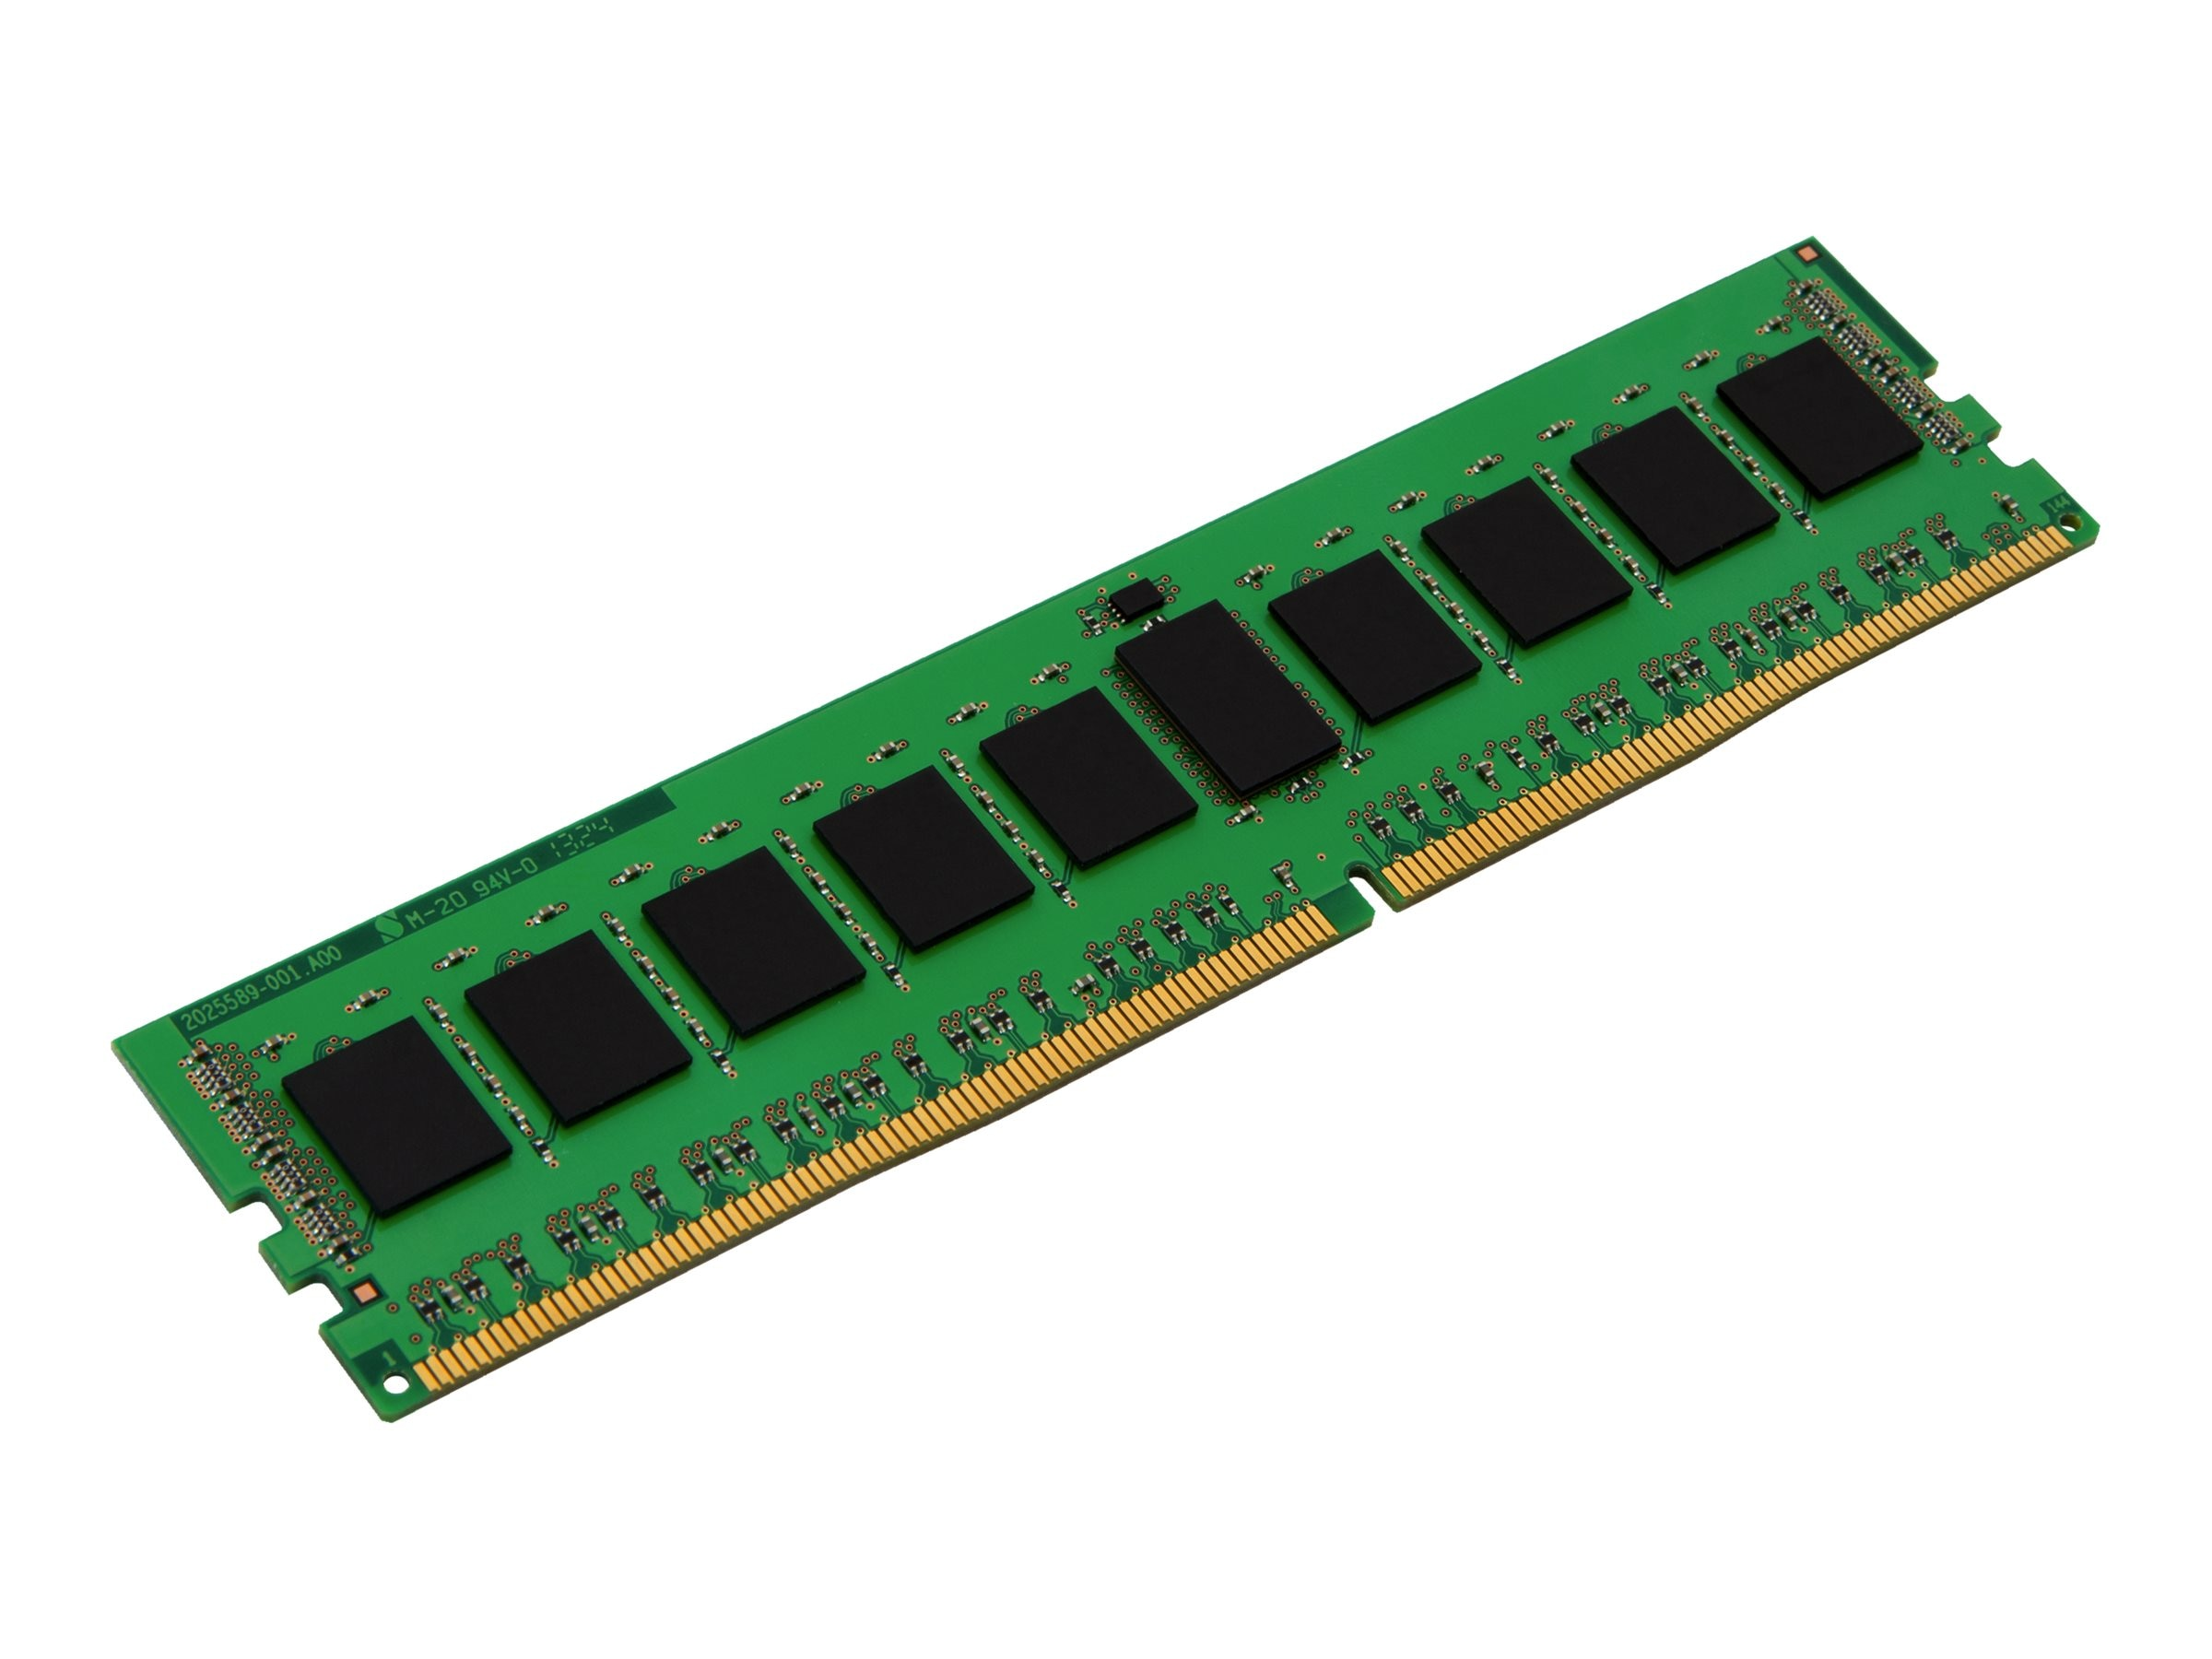 Kingston 16GB PC4-19200 288-pin DDR4 SDRAM DIMM for Select Models, KVR24R17D8/16